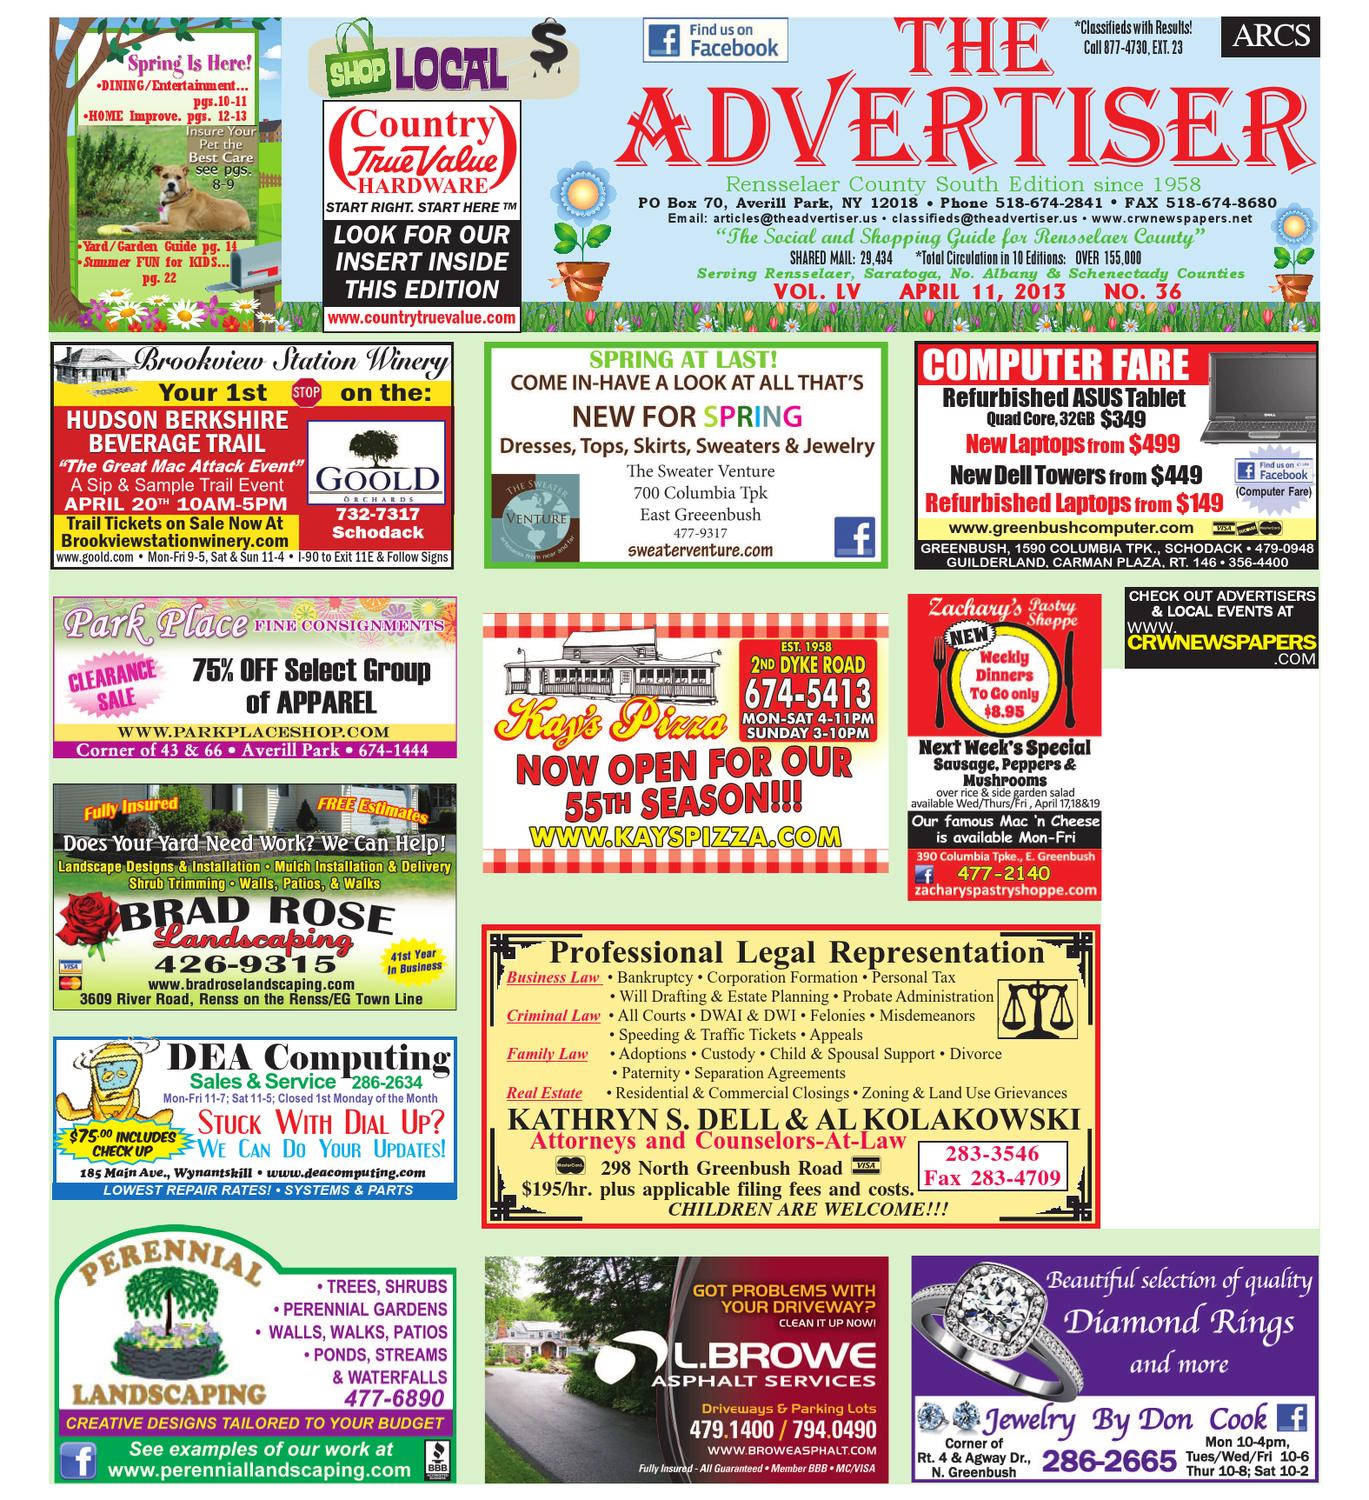 f4cf5e84ed04 Advertiser South 041113 by Capital Region Weekly Newspapers - issuu